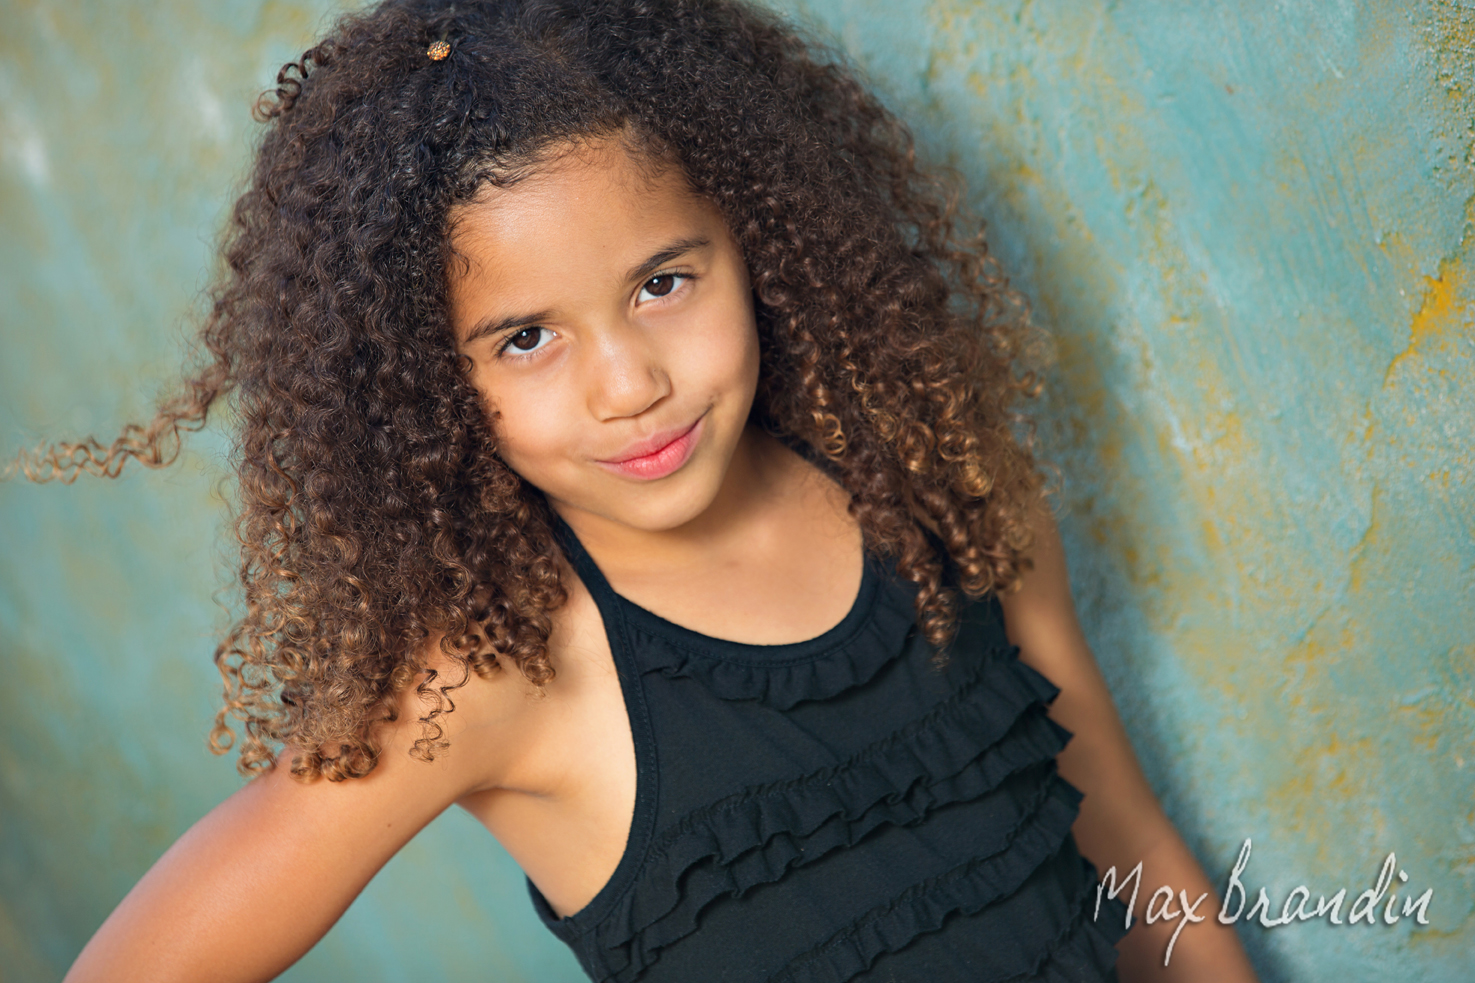 Kids Headshots Los Angeles